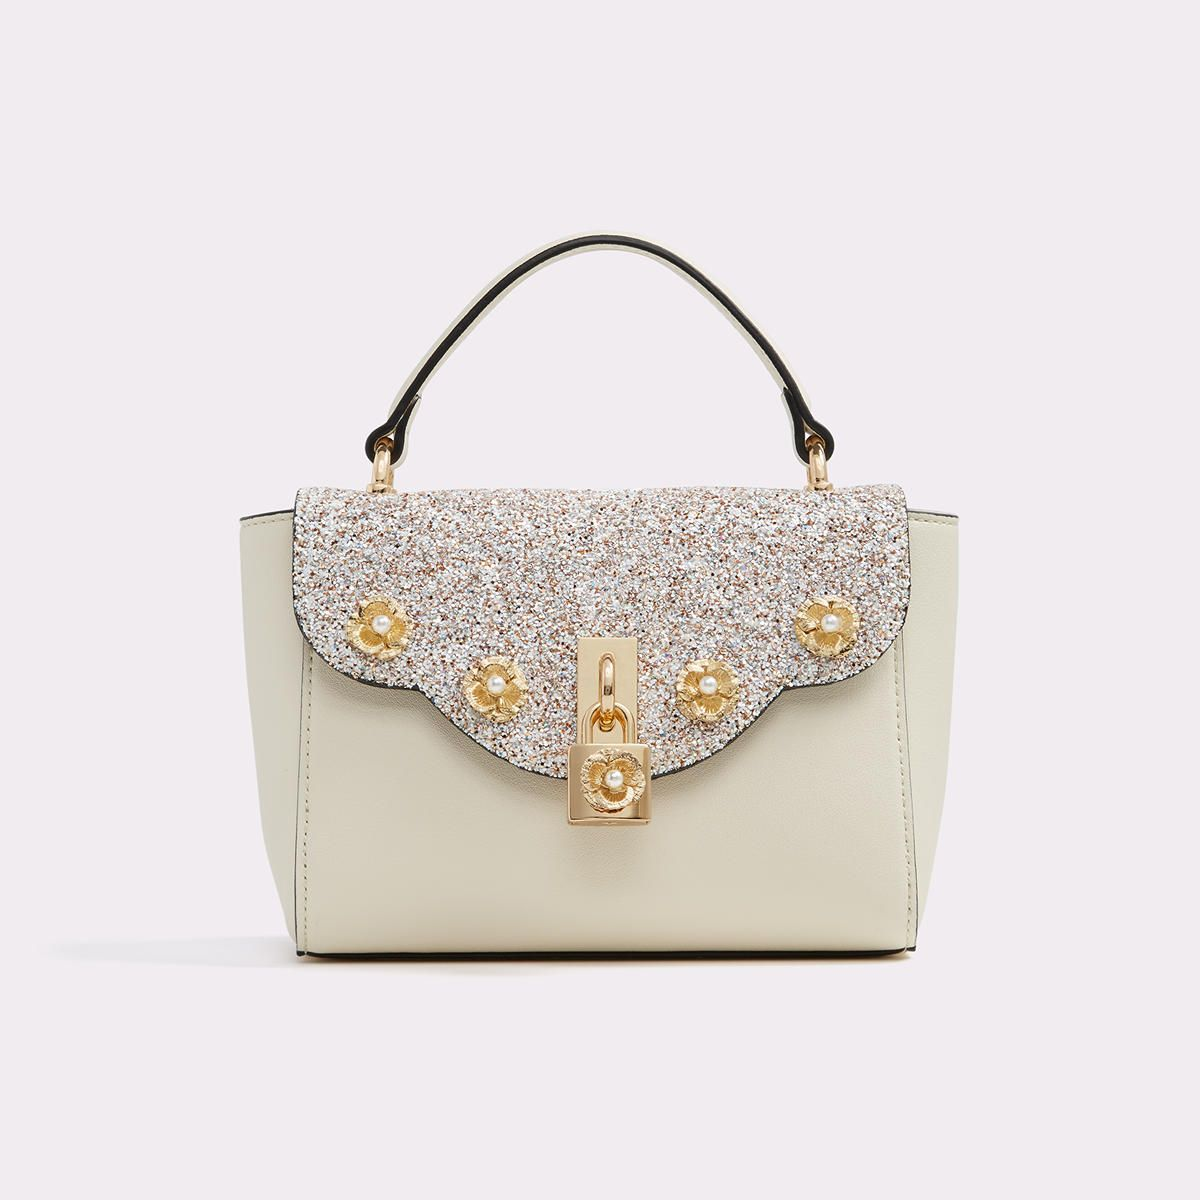 61964ed5957 Badesse Get a handle on style and top off your outfit with this scalloped  top-handle satchel. Topped with pearl charms and dashing gold hardware.